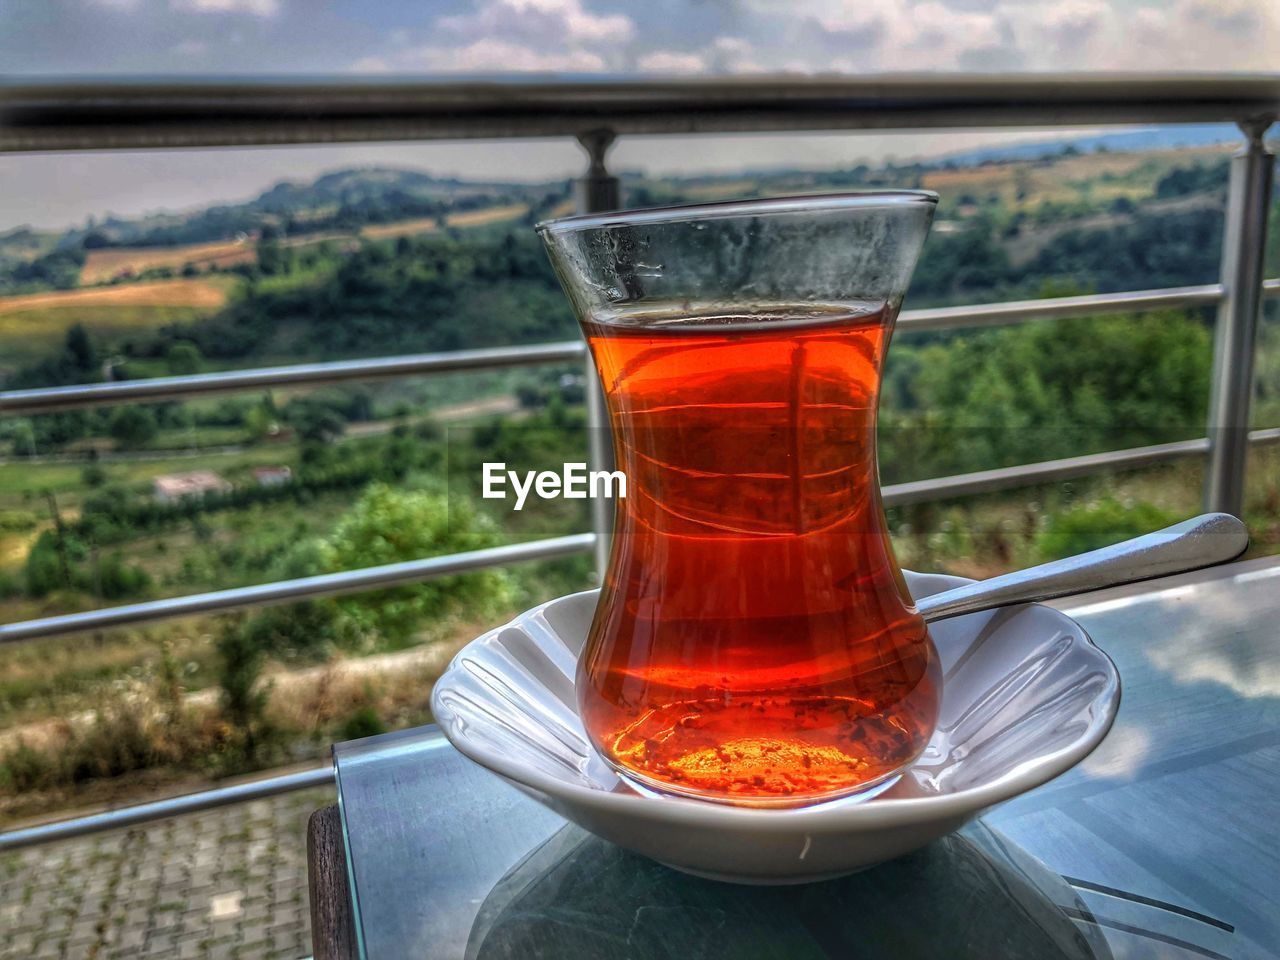 food and drink, drink, tea, crockery, saucer, refreshment, tea - hot drink, hot drink, transparent, close-up, cup, glass - material, focus on foreground, kitchen utensil, day, no people, nature, spoon, tea cup, mug, outdoors, glass